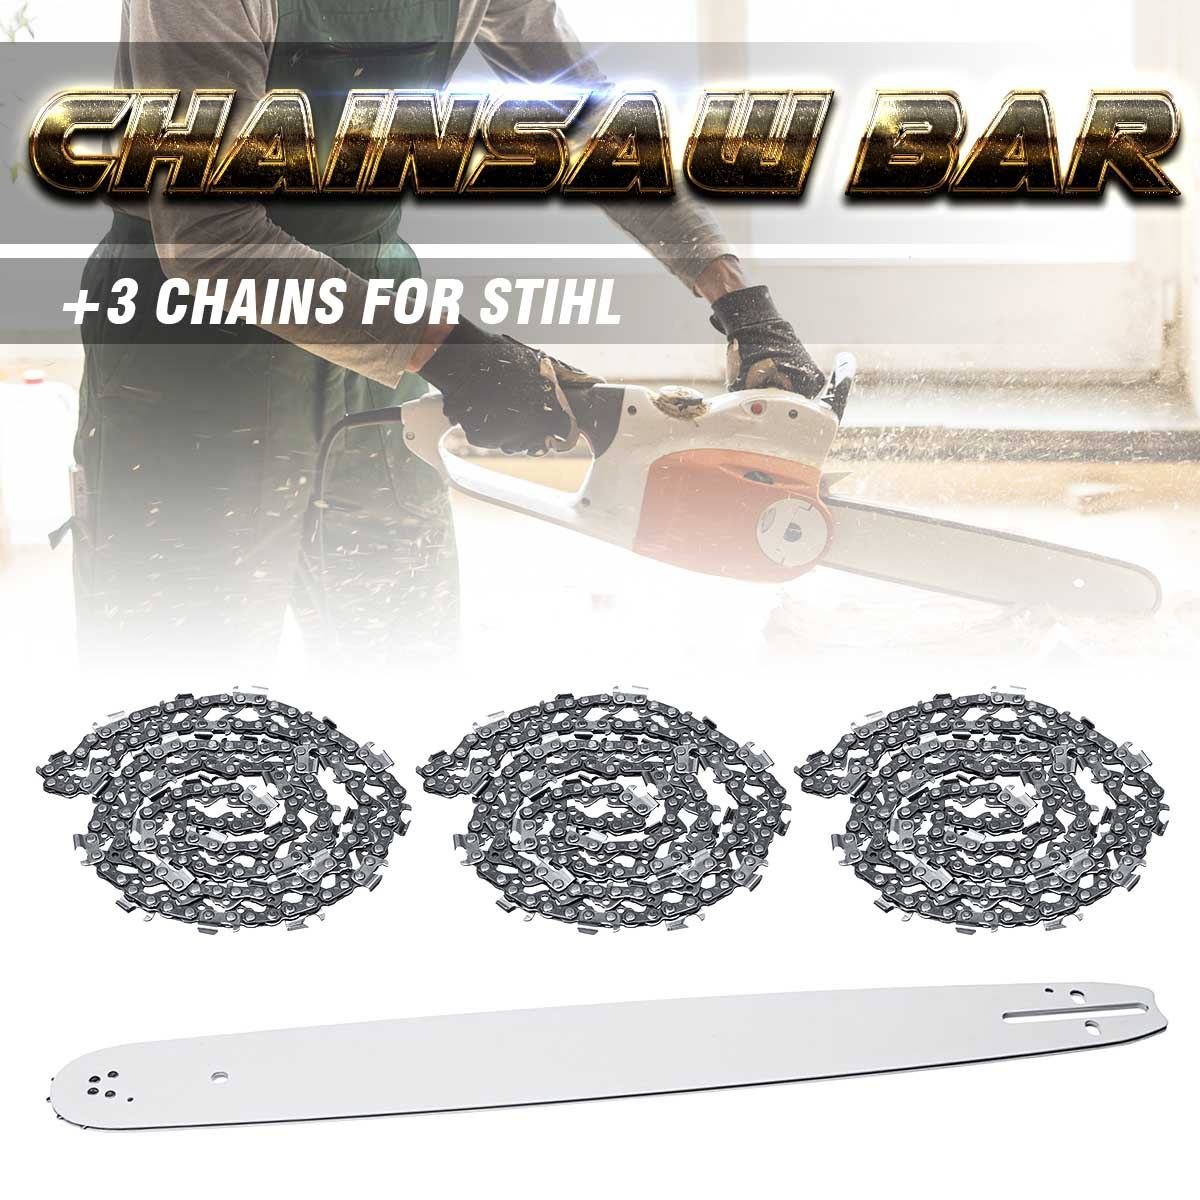 4Pcs 20 Chainsaw Guide Bar with Saw Chain 3/8 72DL .63 For STIHL MS290 MS291-310-340-360-361-361C Power Tools Accessories 4pcs 20 chainsaw guide bar with saw chain 3 8 72dl 63 for stihl ms290 ms291 310 340 360 361 361c power tools accessories